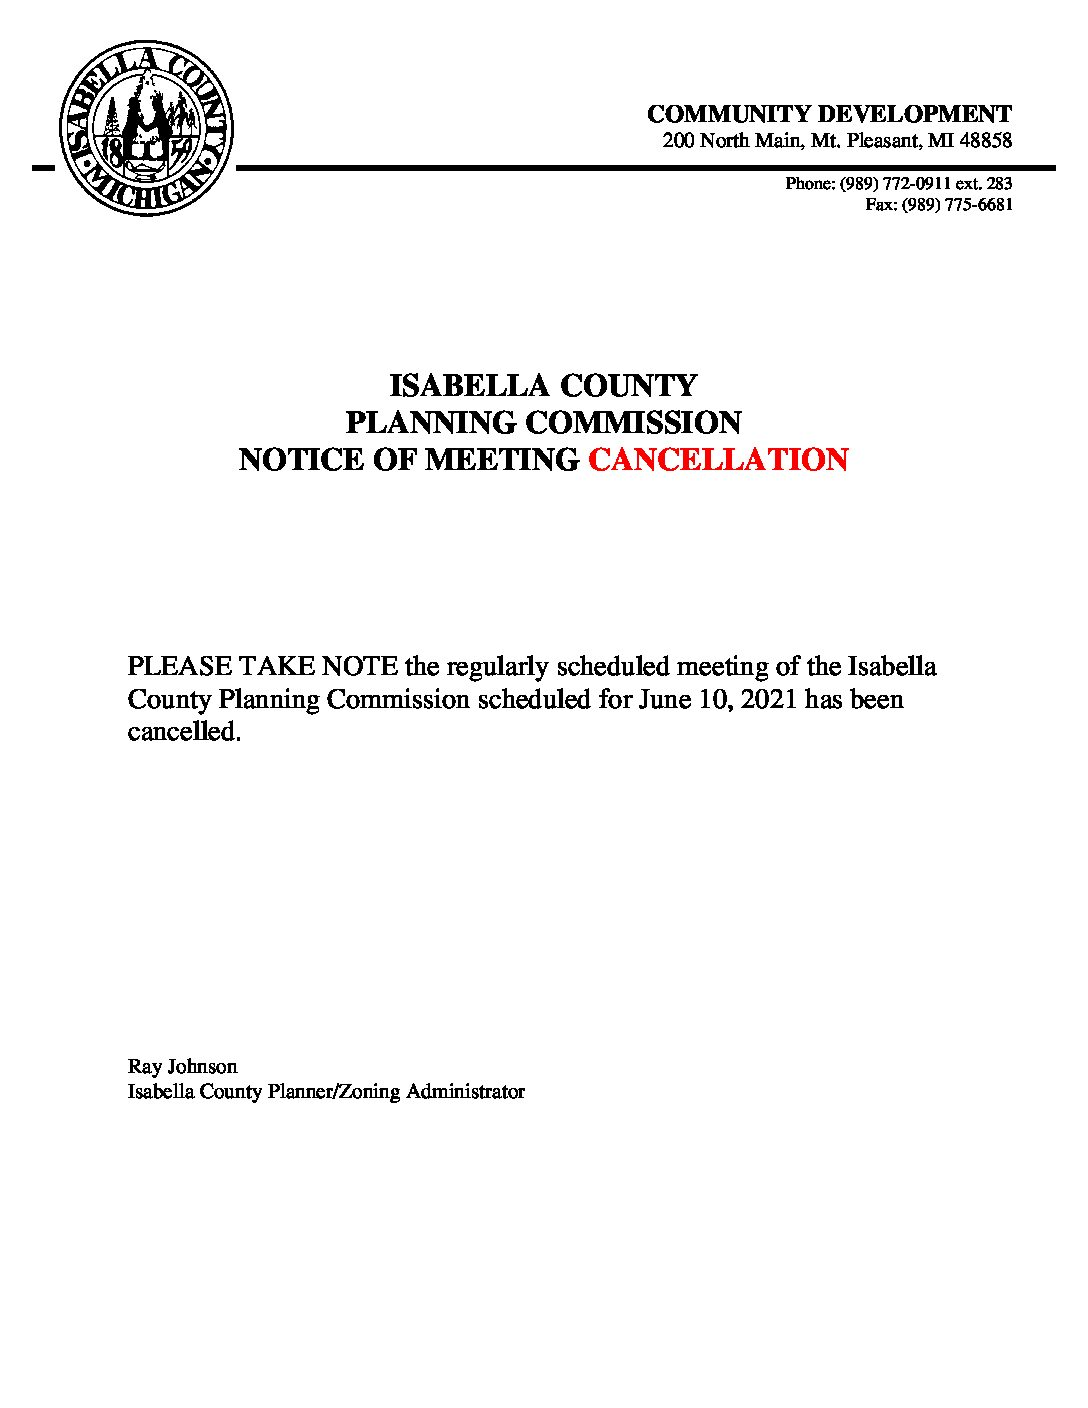 preview image of first page June 10, 2021 Cancellation Notice